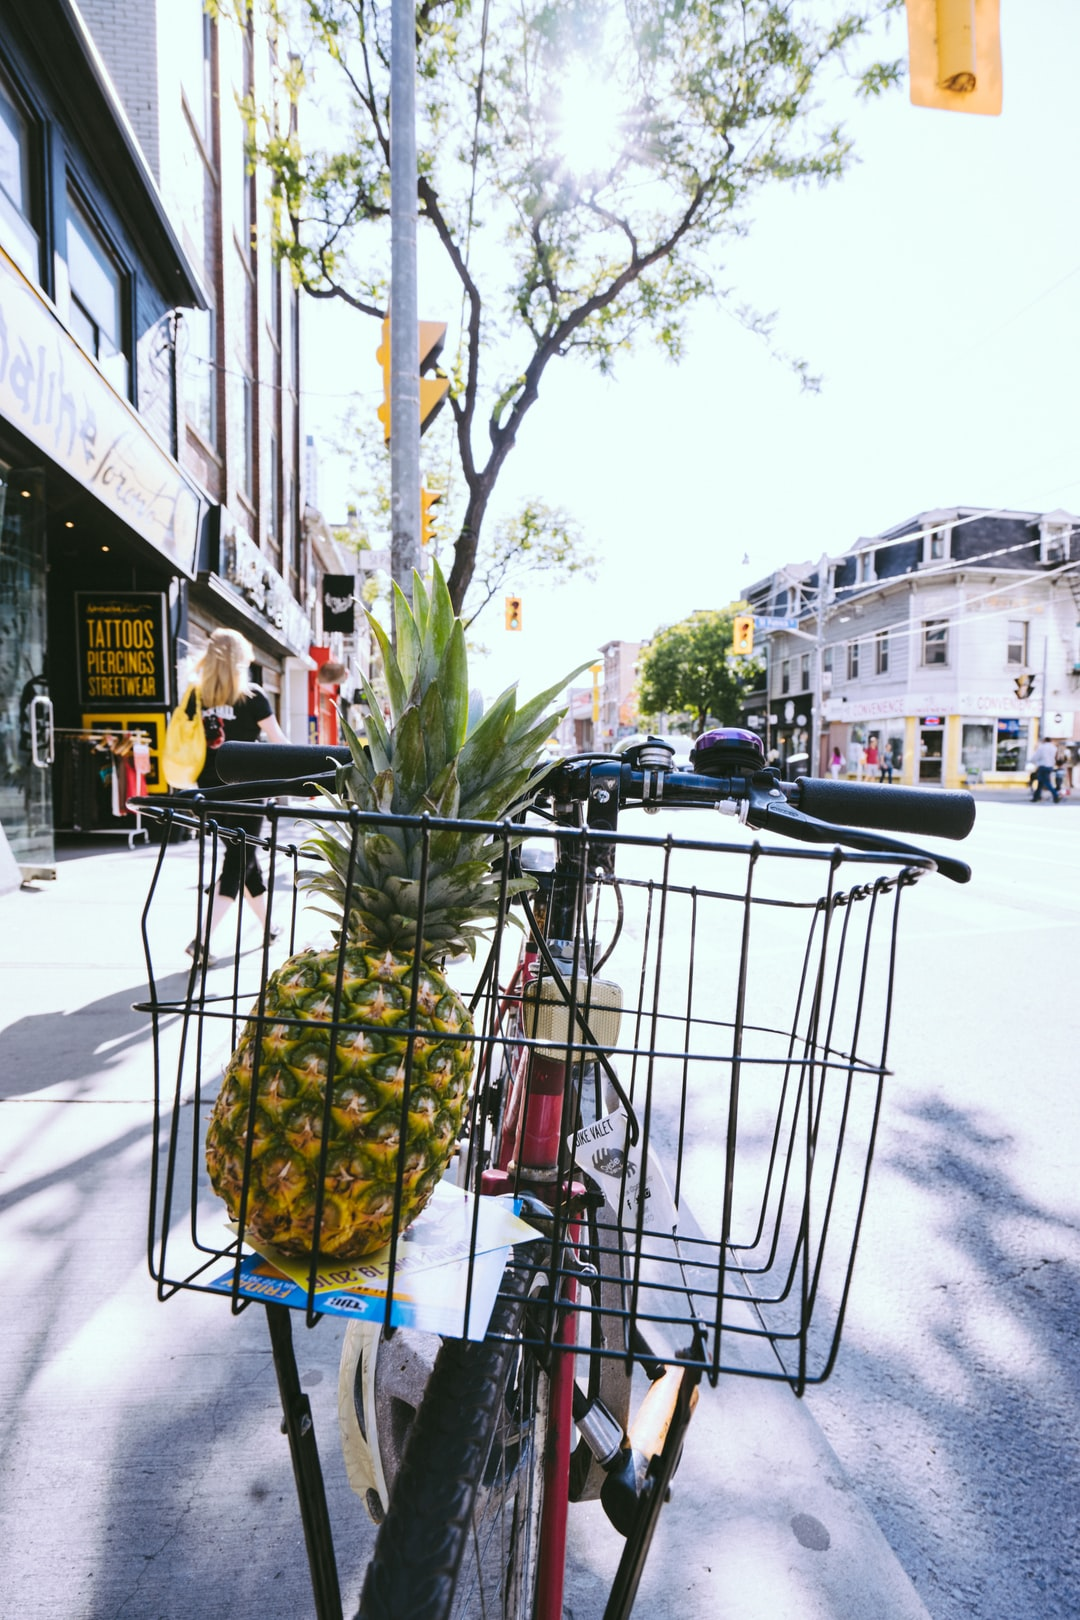 free pineapple image shot in toronto